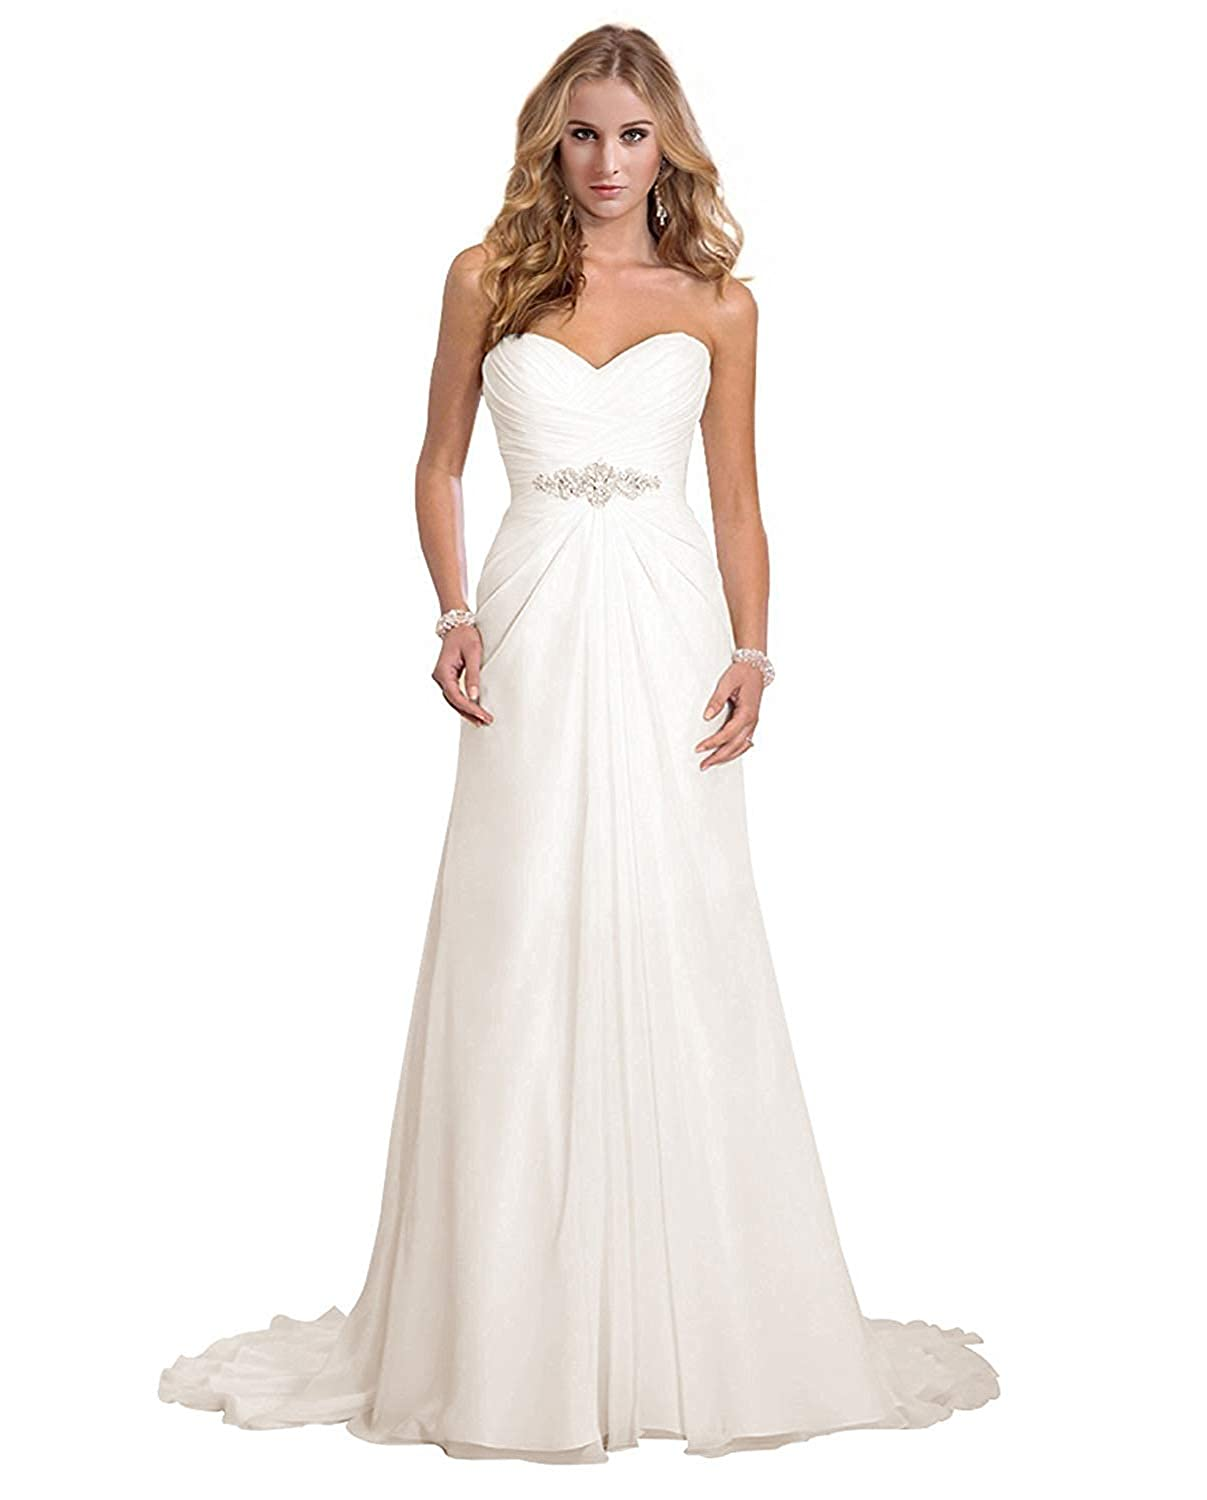 Dreambridal Women S Chiffon A Line Wedding Dresses Simple Sweetheart Beach Bridal Gowns With Veil